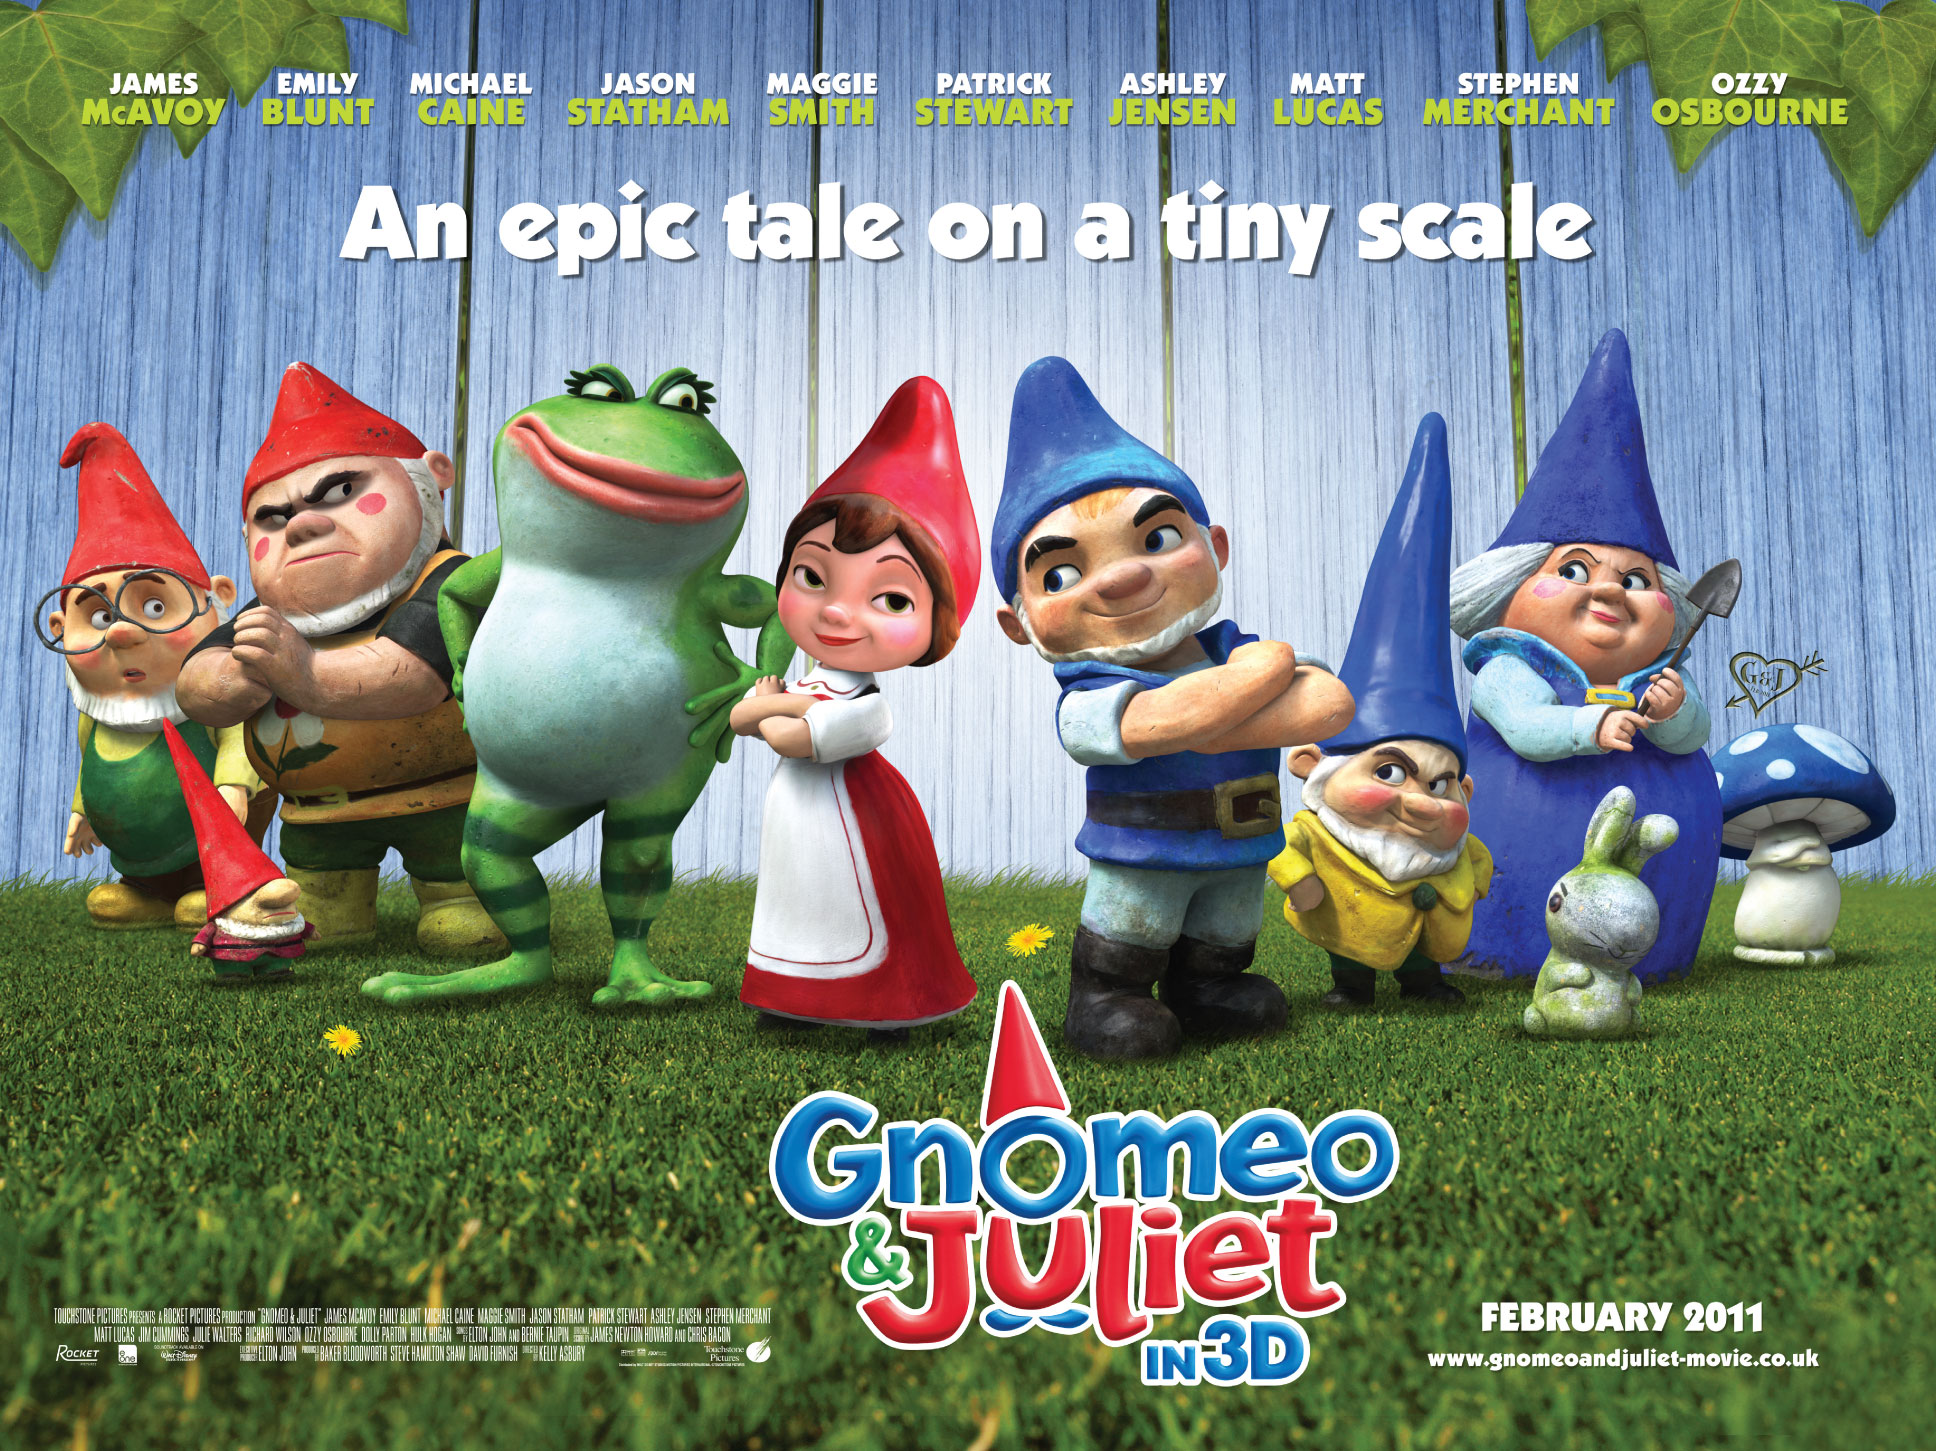 Cast Of Gnomeo And Juliet Movie Poster Wallpaper